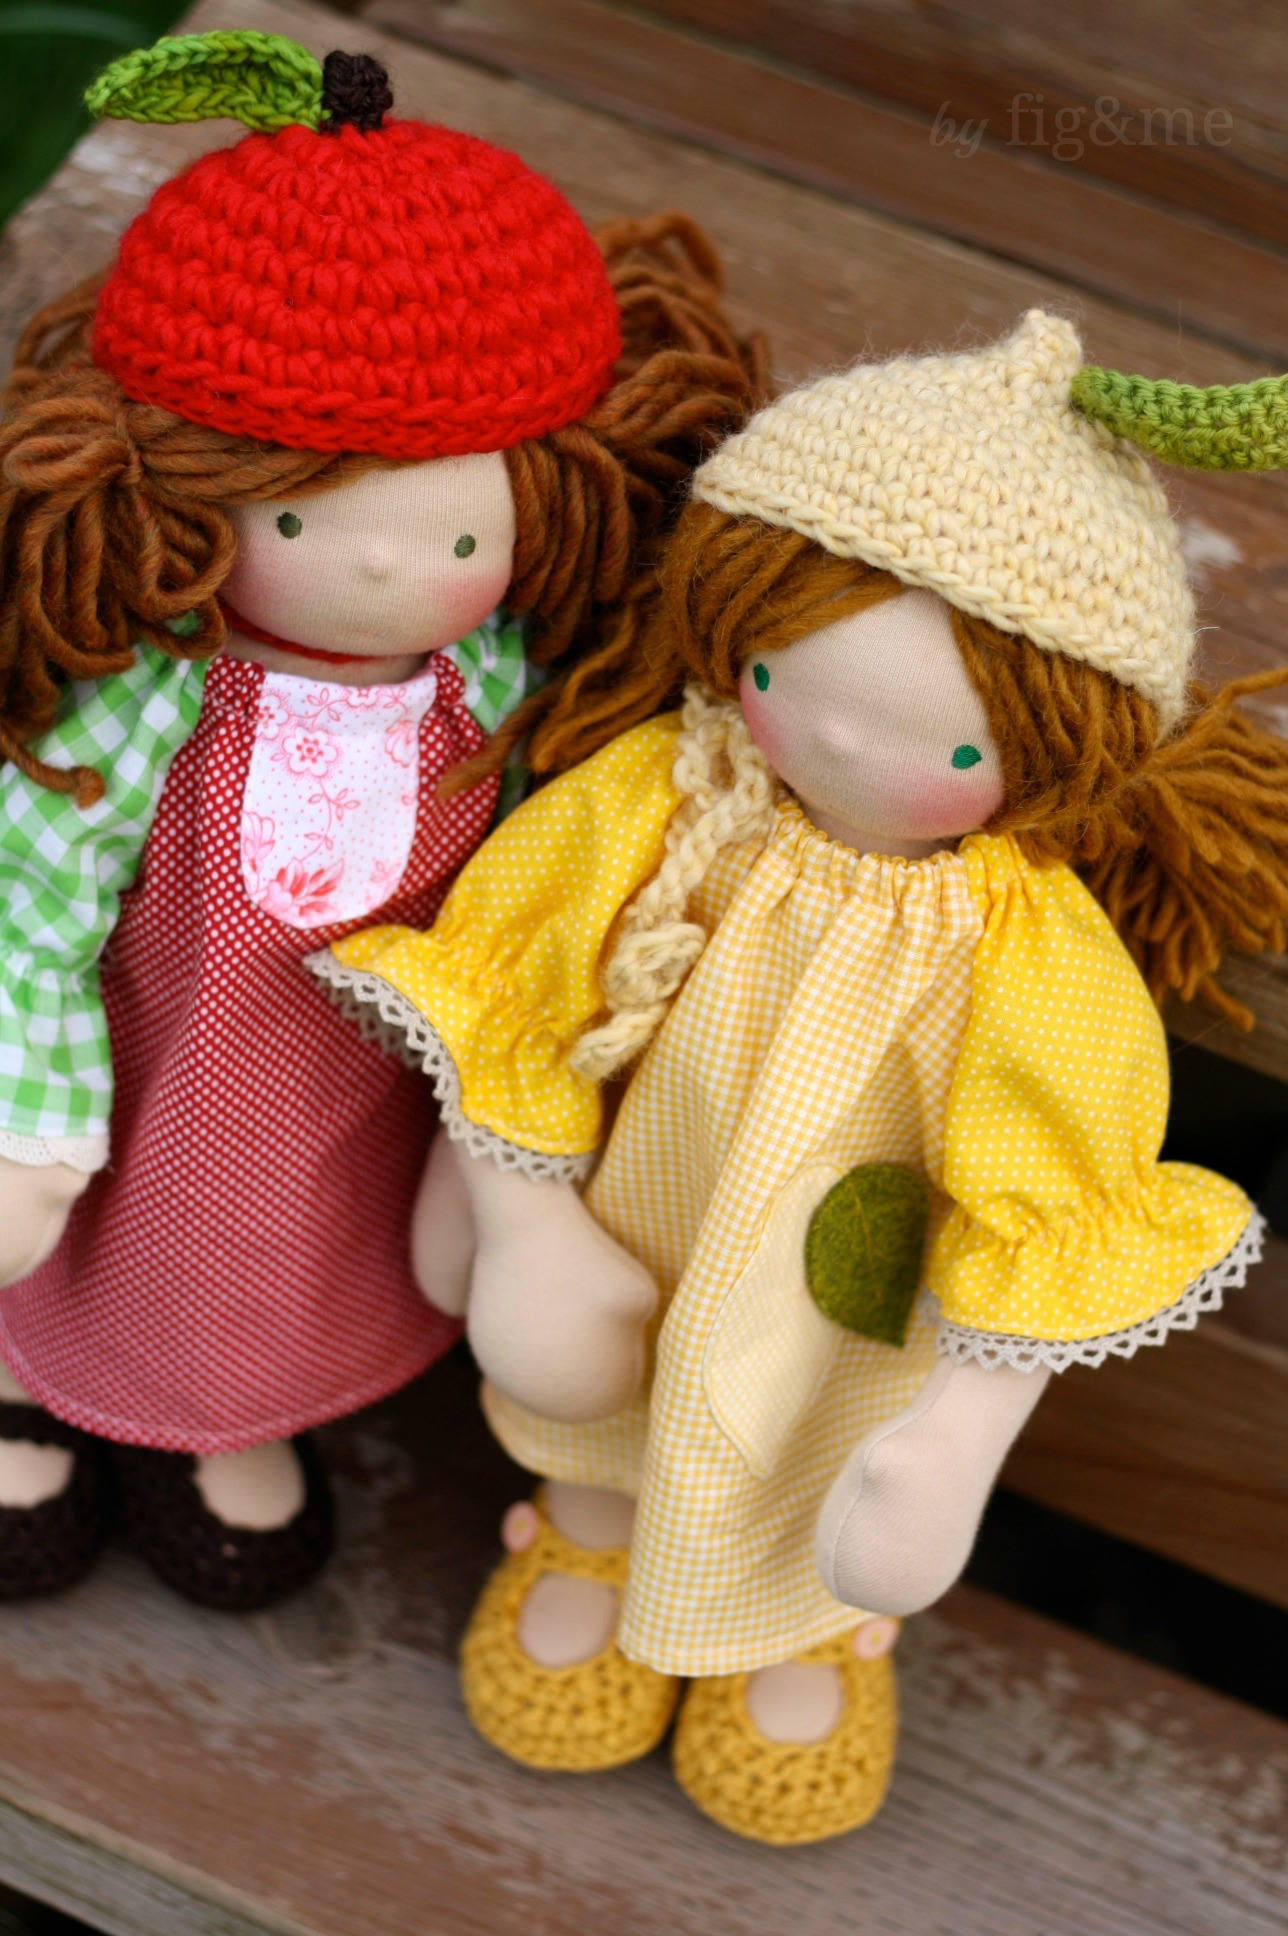 Sweet little fruity girls, by fig and me